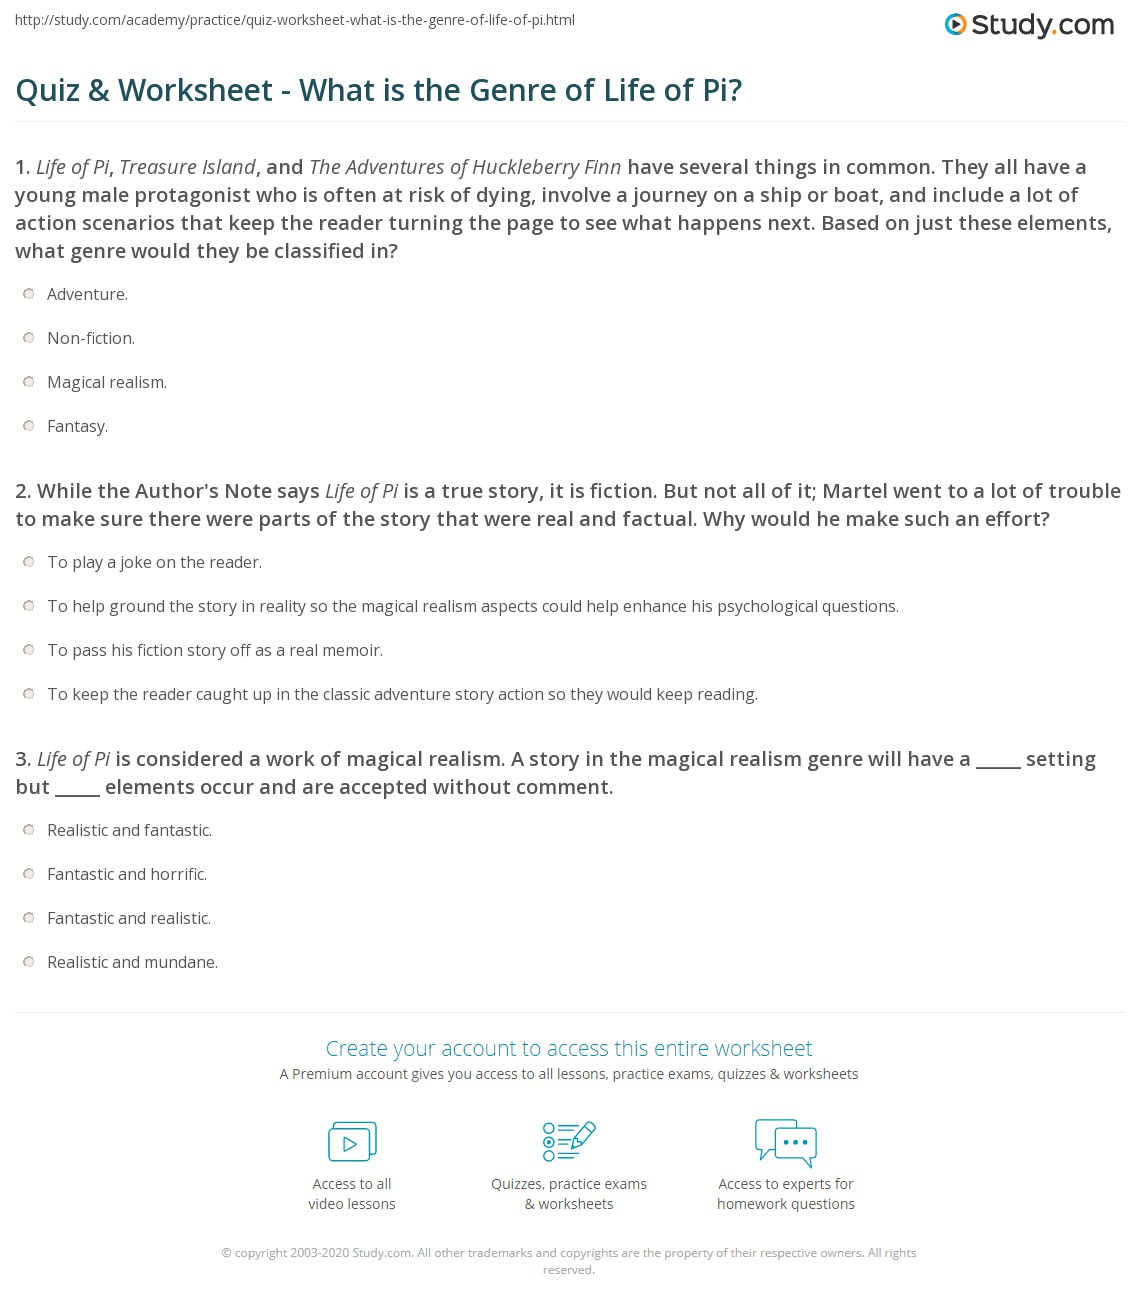 Free Worksheet Genre Worksheet quiz martel went to a lot of trouble make s